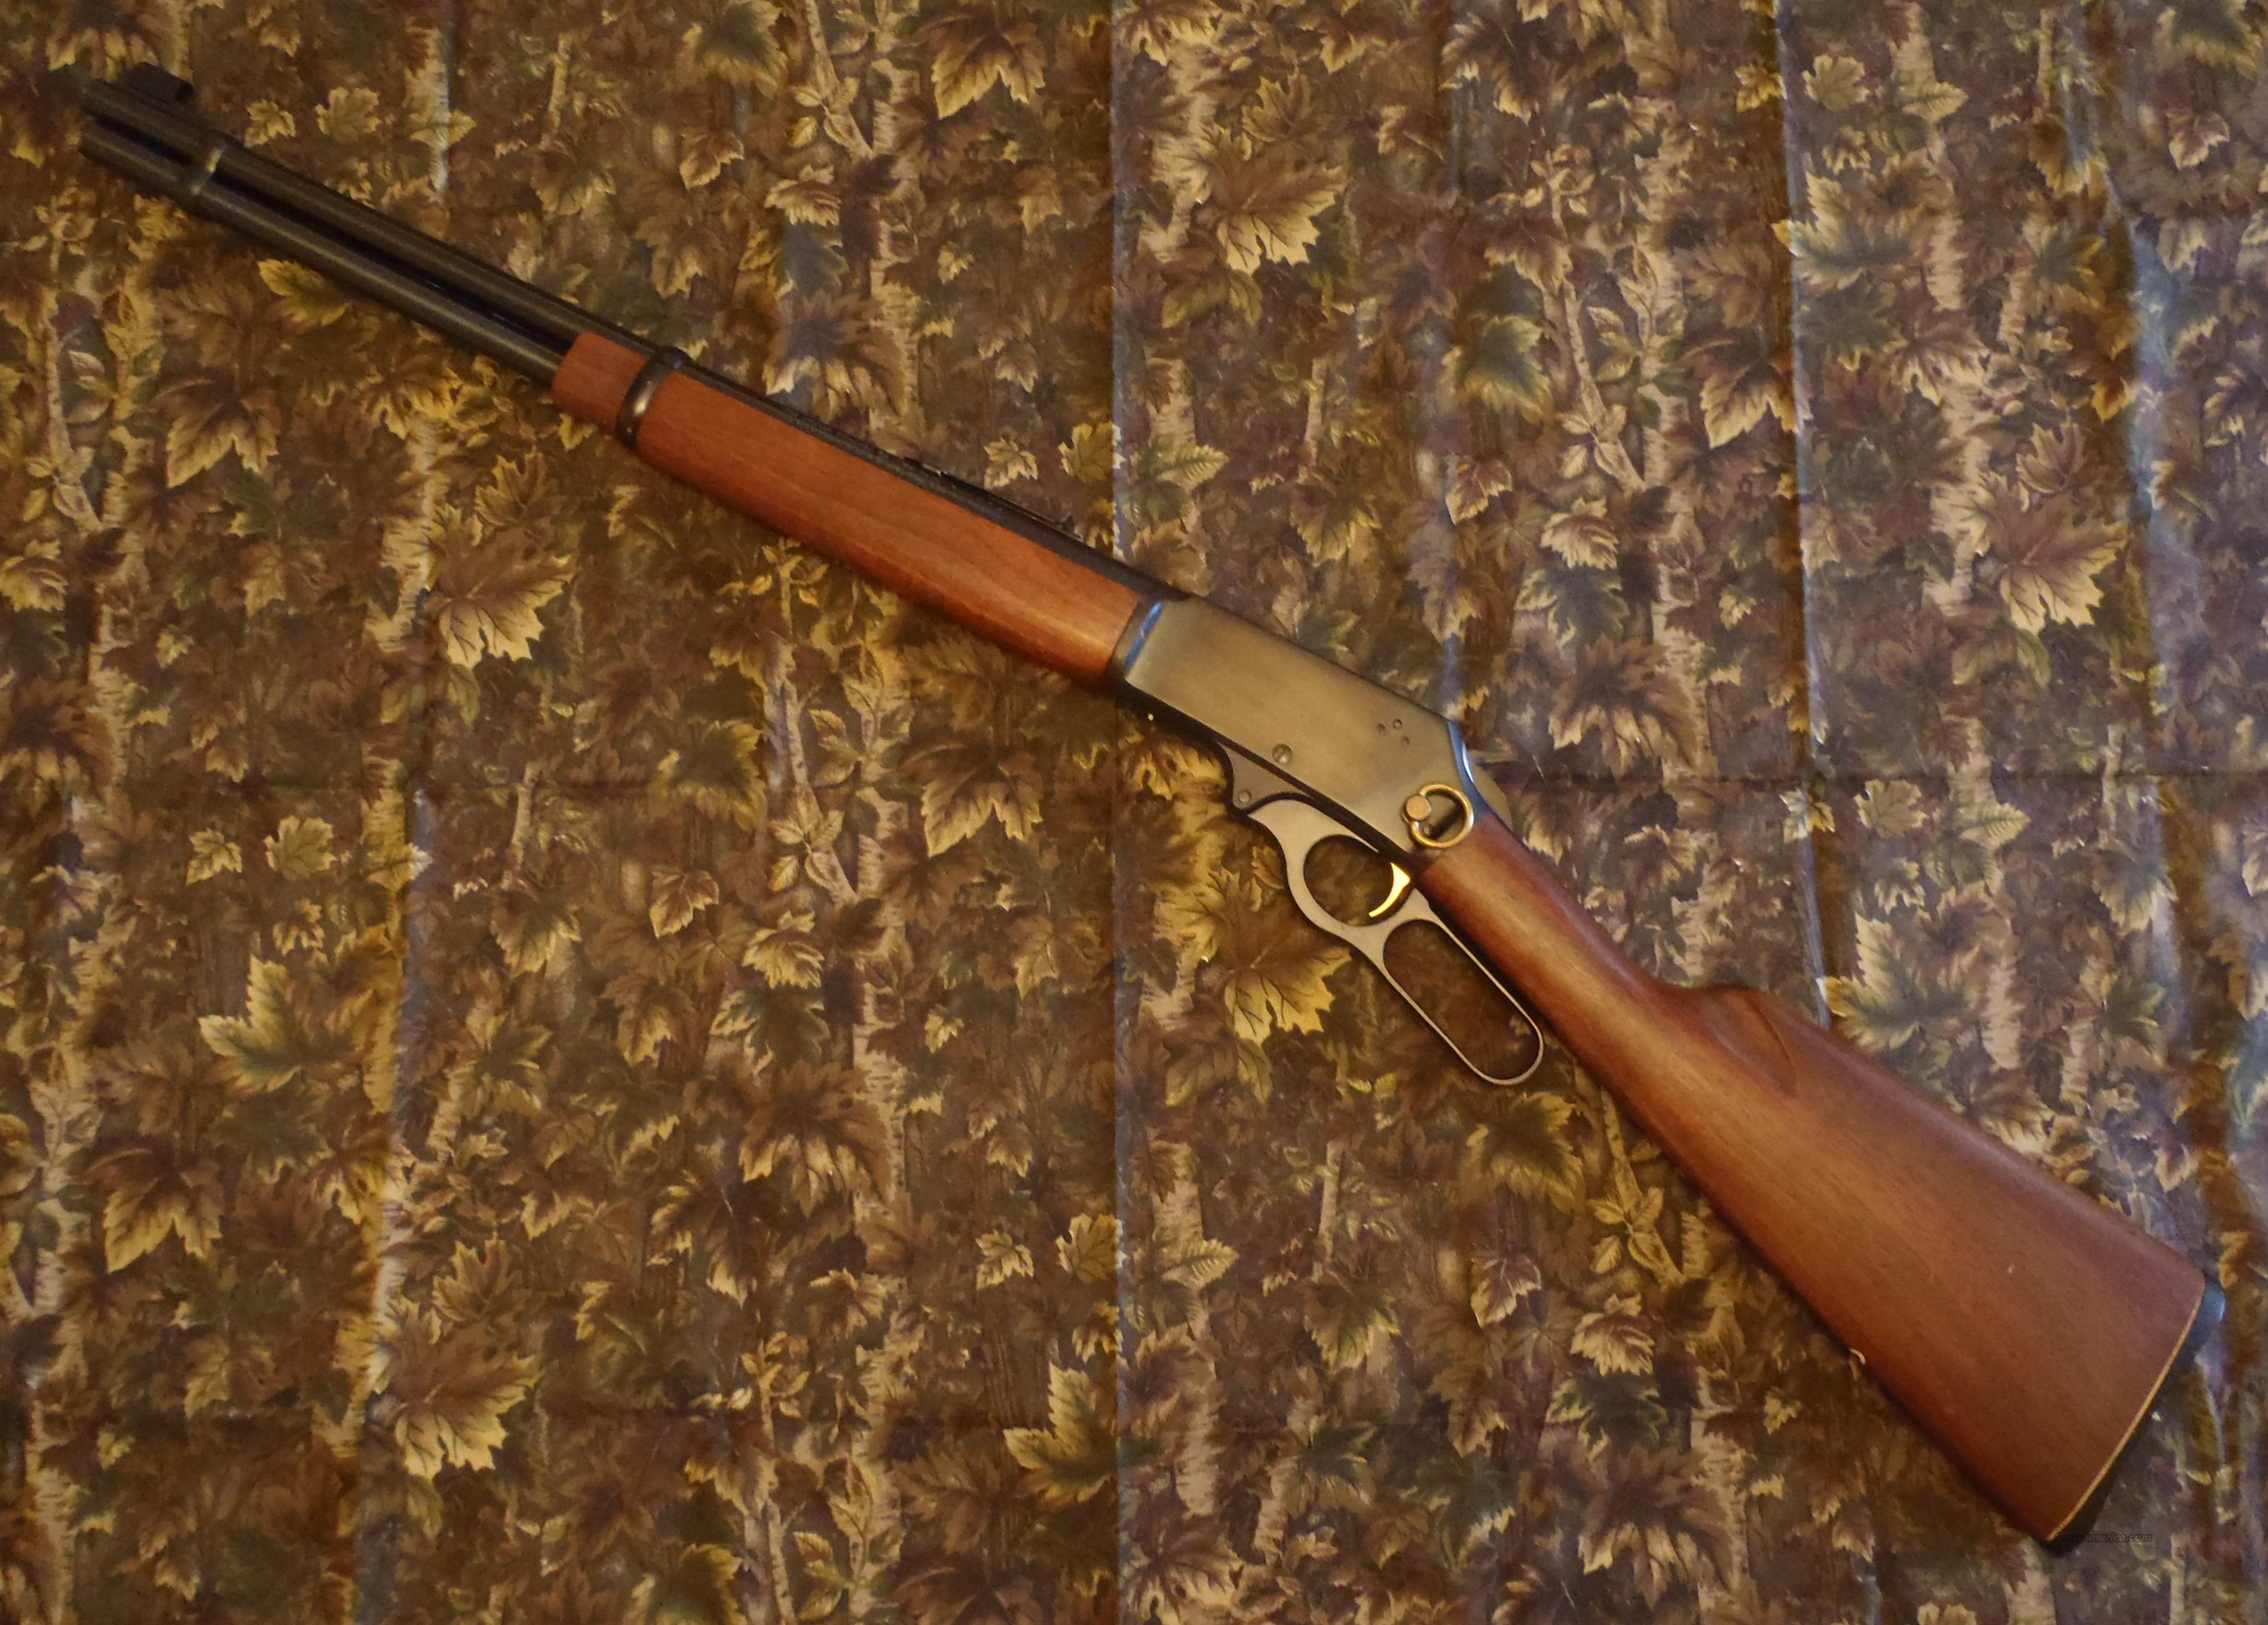 Marlin 336 - .44 magnum  Guns > Rifles > Marlin Rifles > Modern > Lever Action